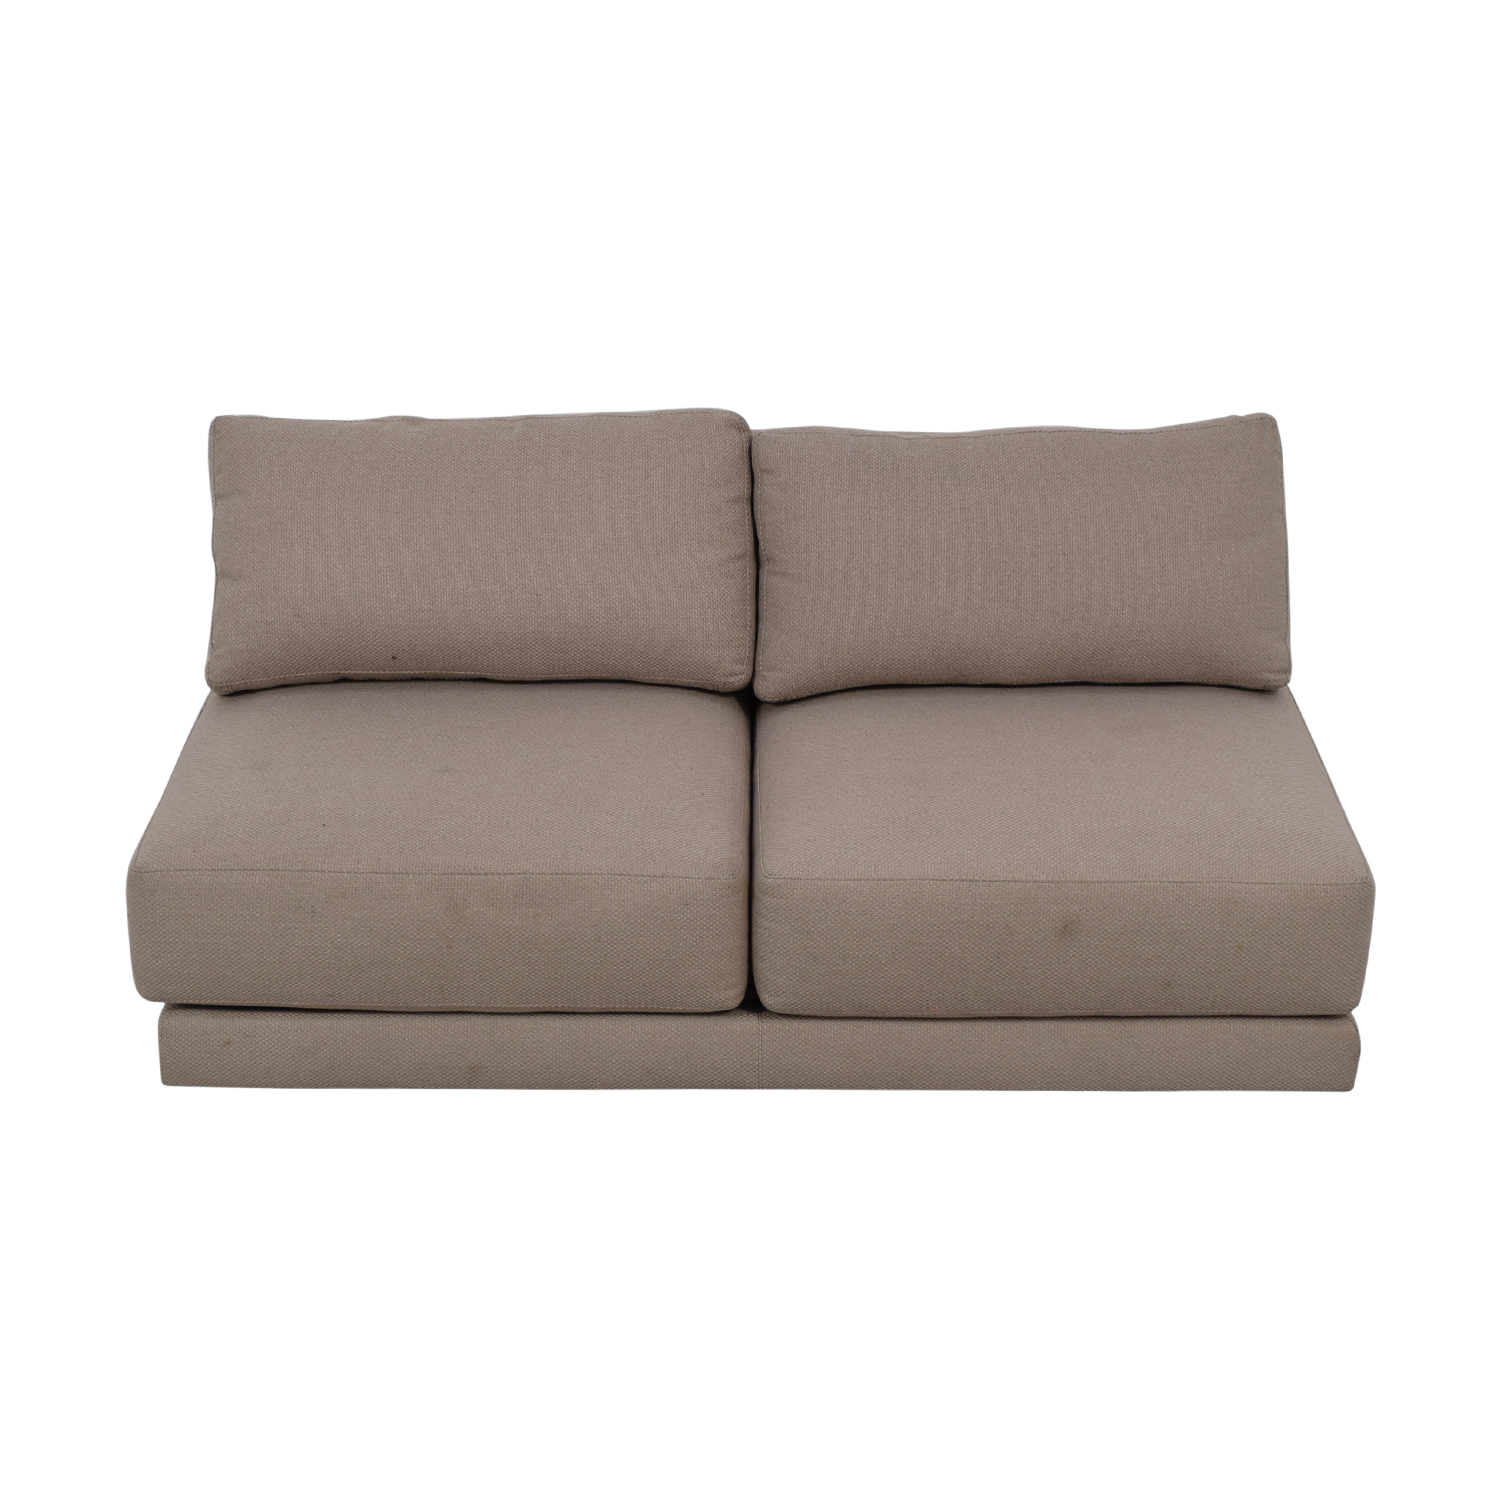 Crate & Barrel Moda Grey Armless Loveseat / Sofas